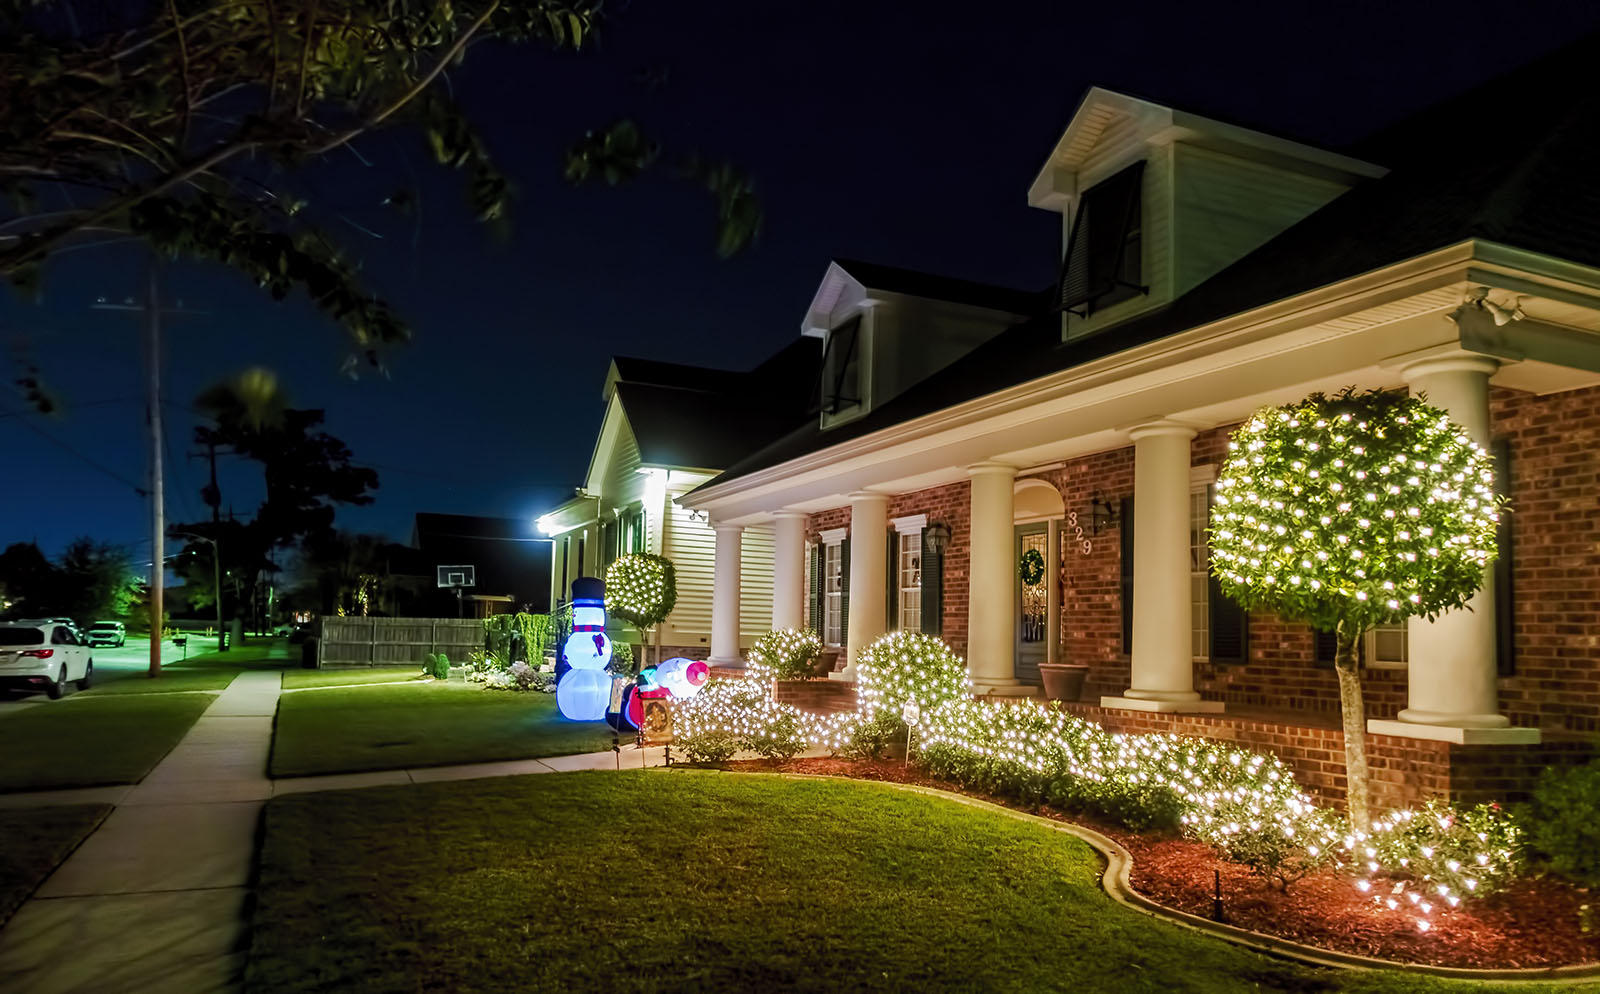 Provide Lighting For Security On The Exterior Of Home-3d visualization